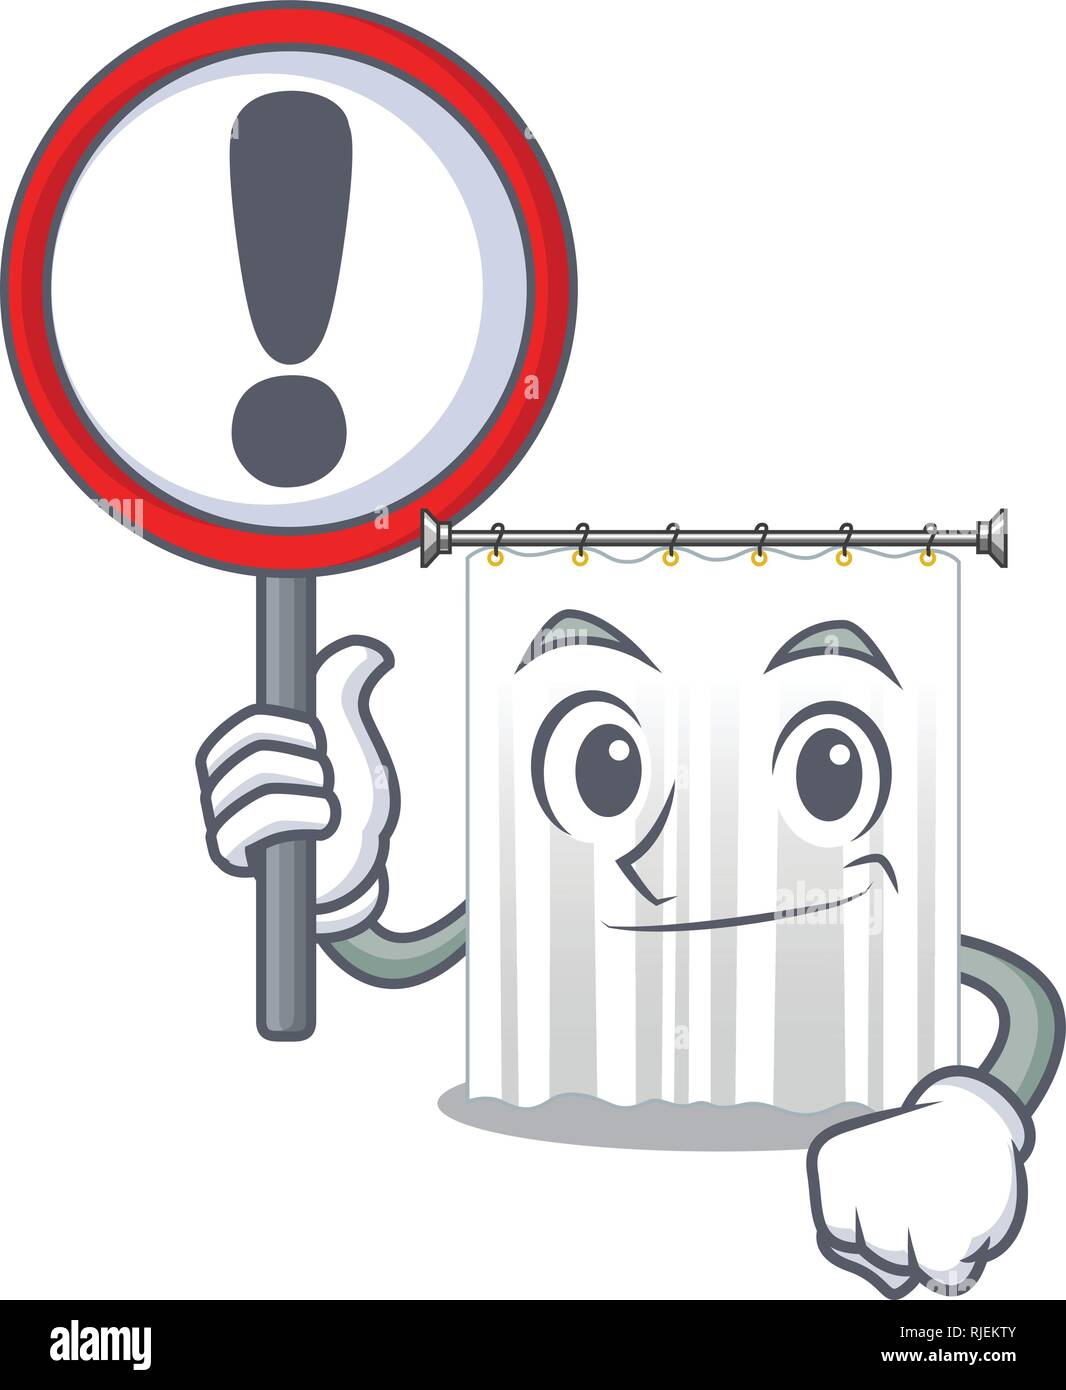 With sign shower cortains in shape of mascot - Stock Image